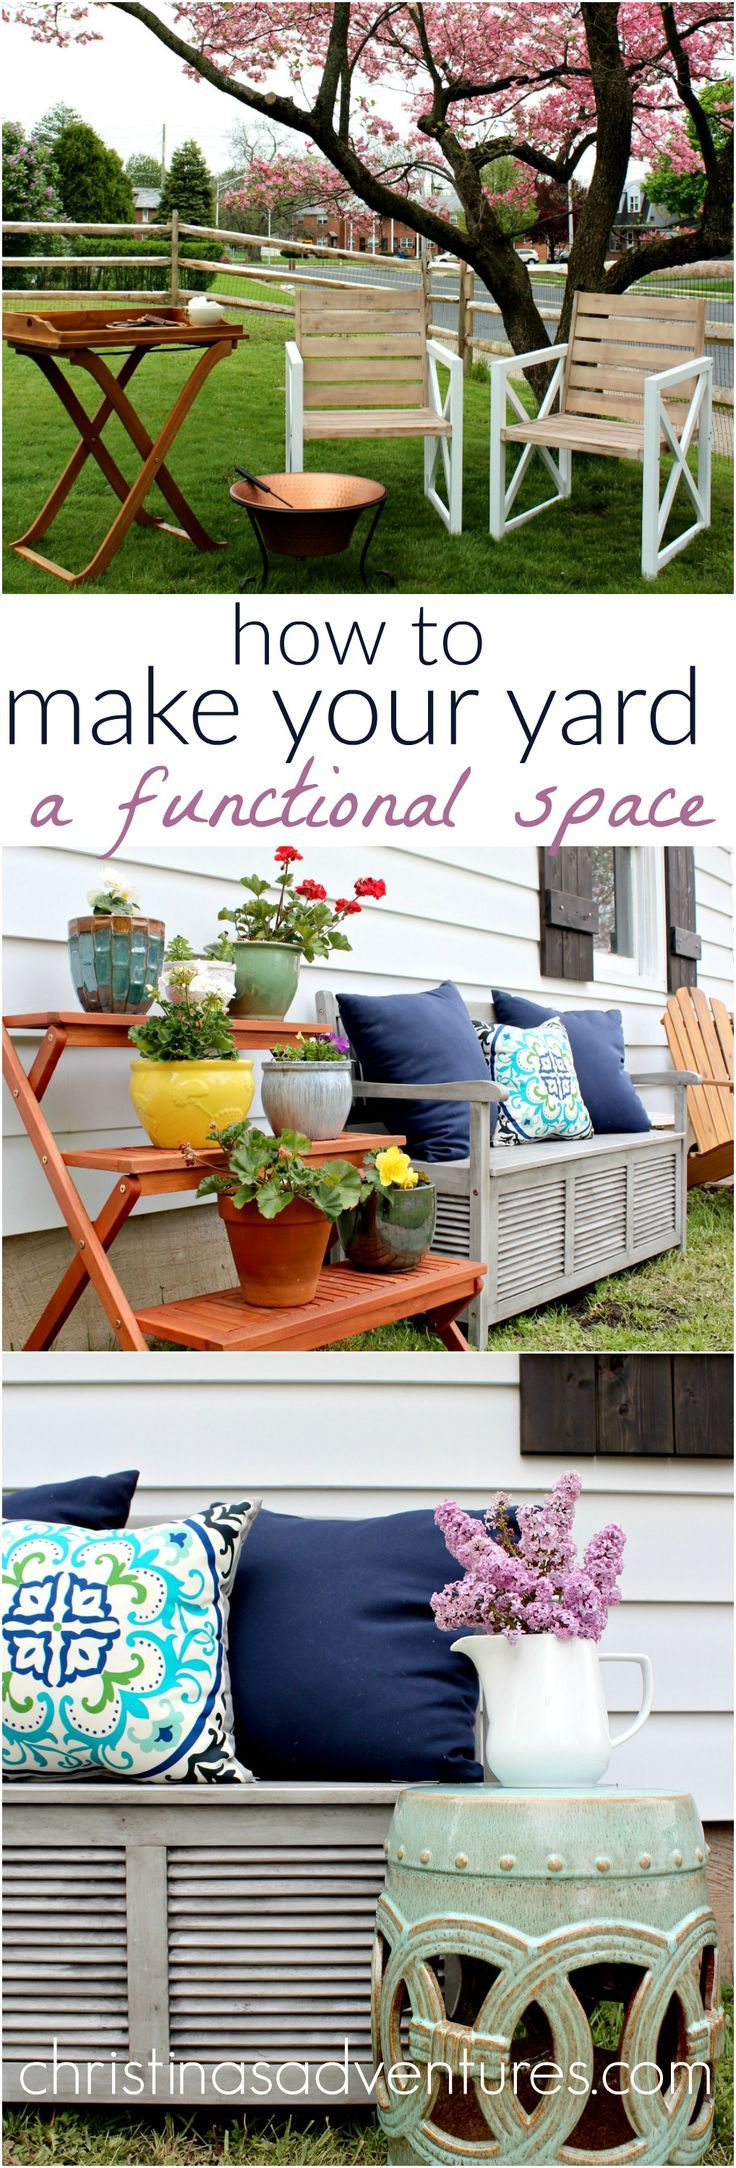 Simple & effective tips to make your yard a functional AND beautiful space - great ideas!